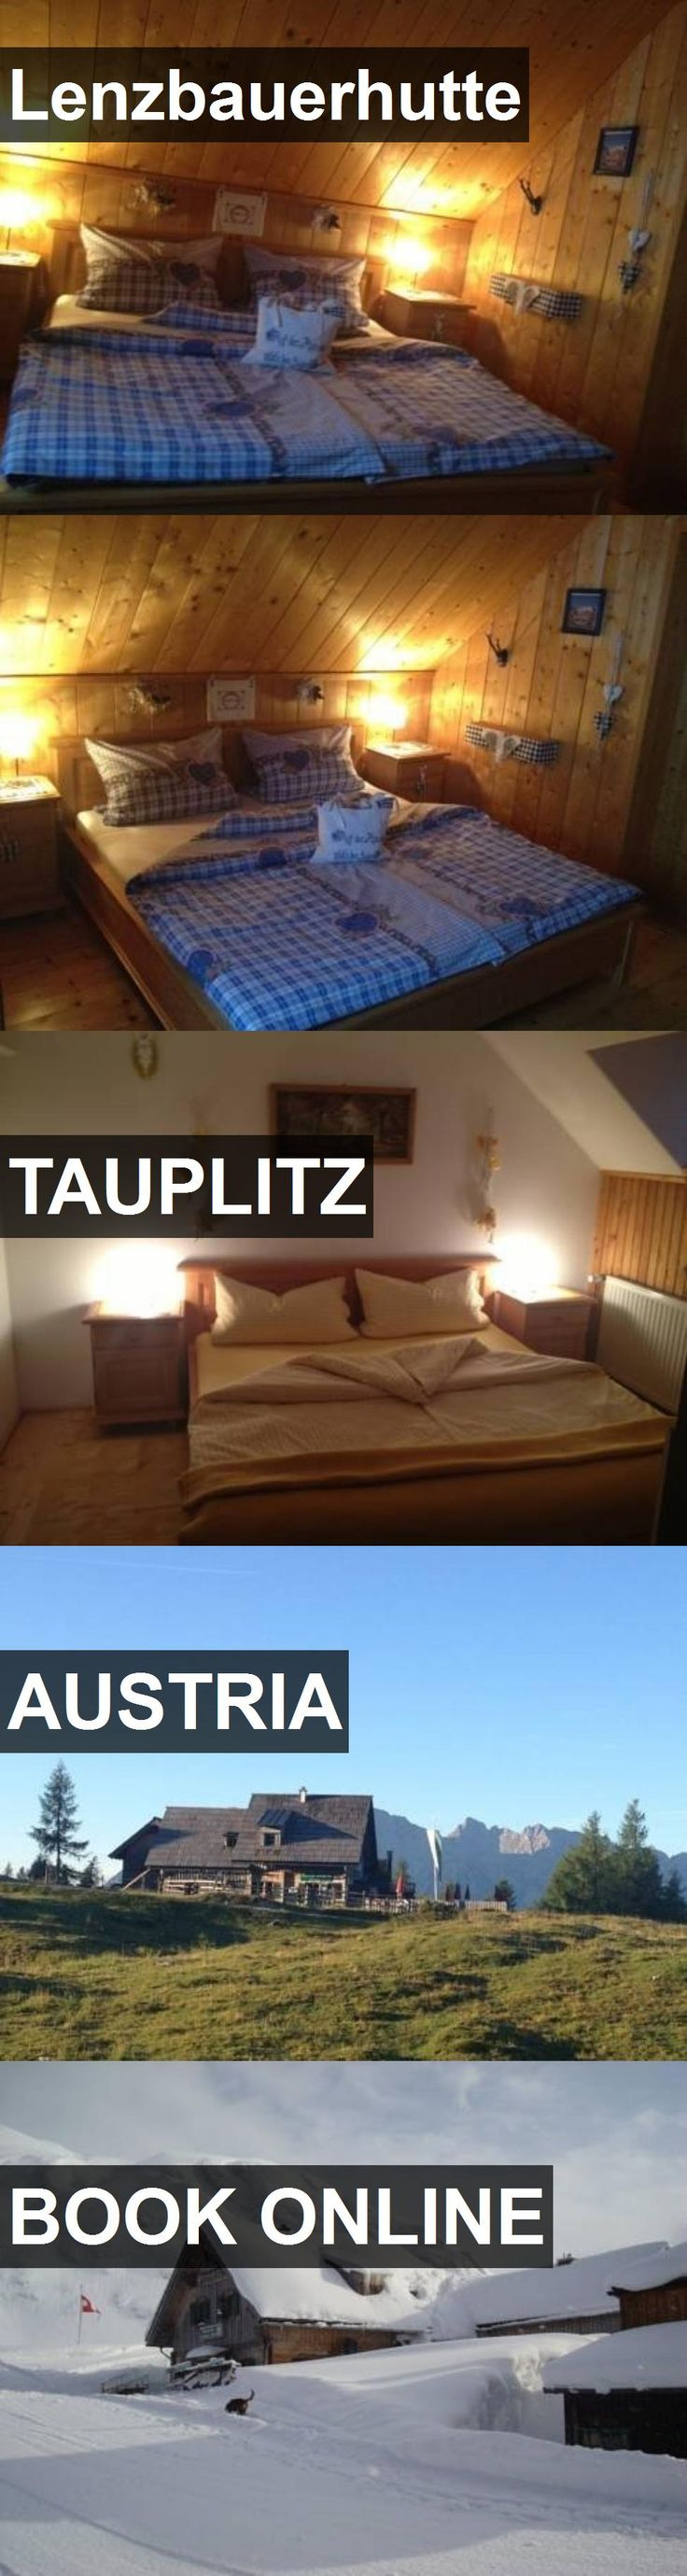 Hotel Lenzbauerhutte in Tauplitz, Austria. For more information, photos, reviews and best prices please follow the link. #Austria #Tauplitz #travel #vacation #hotel